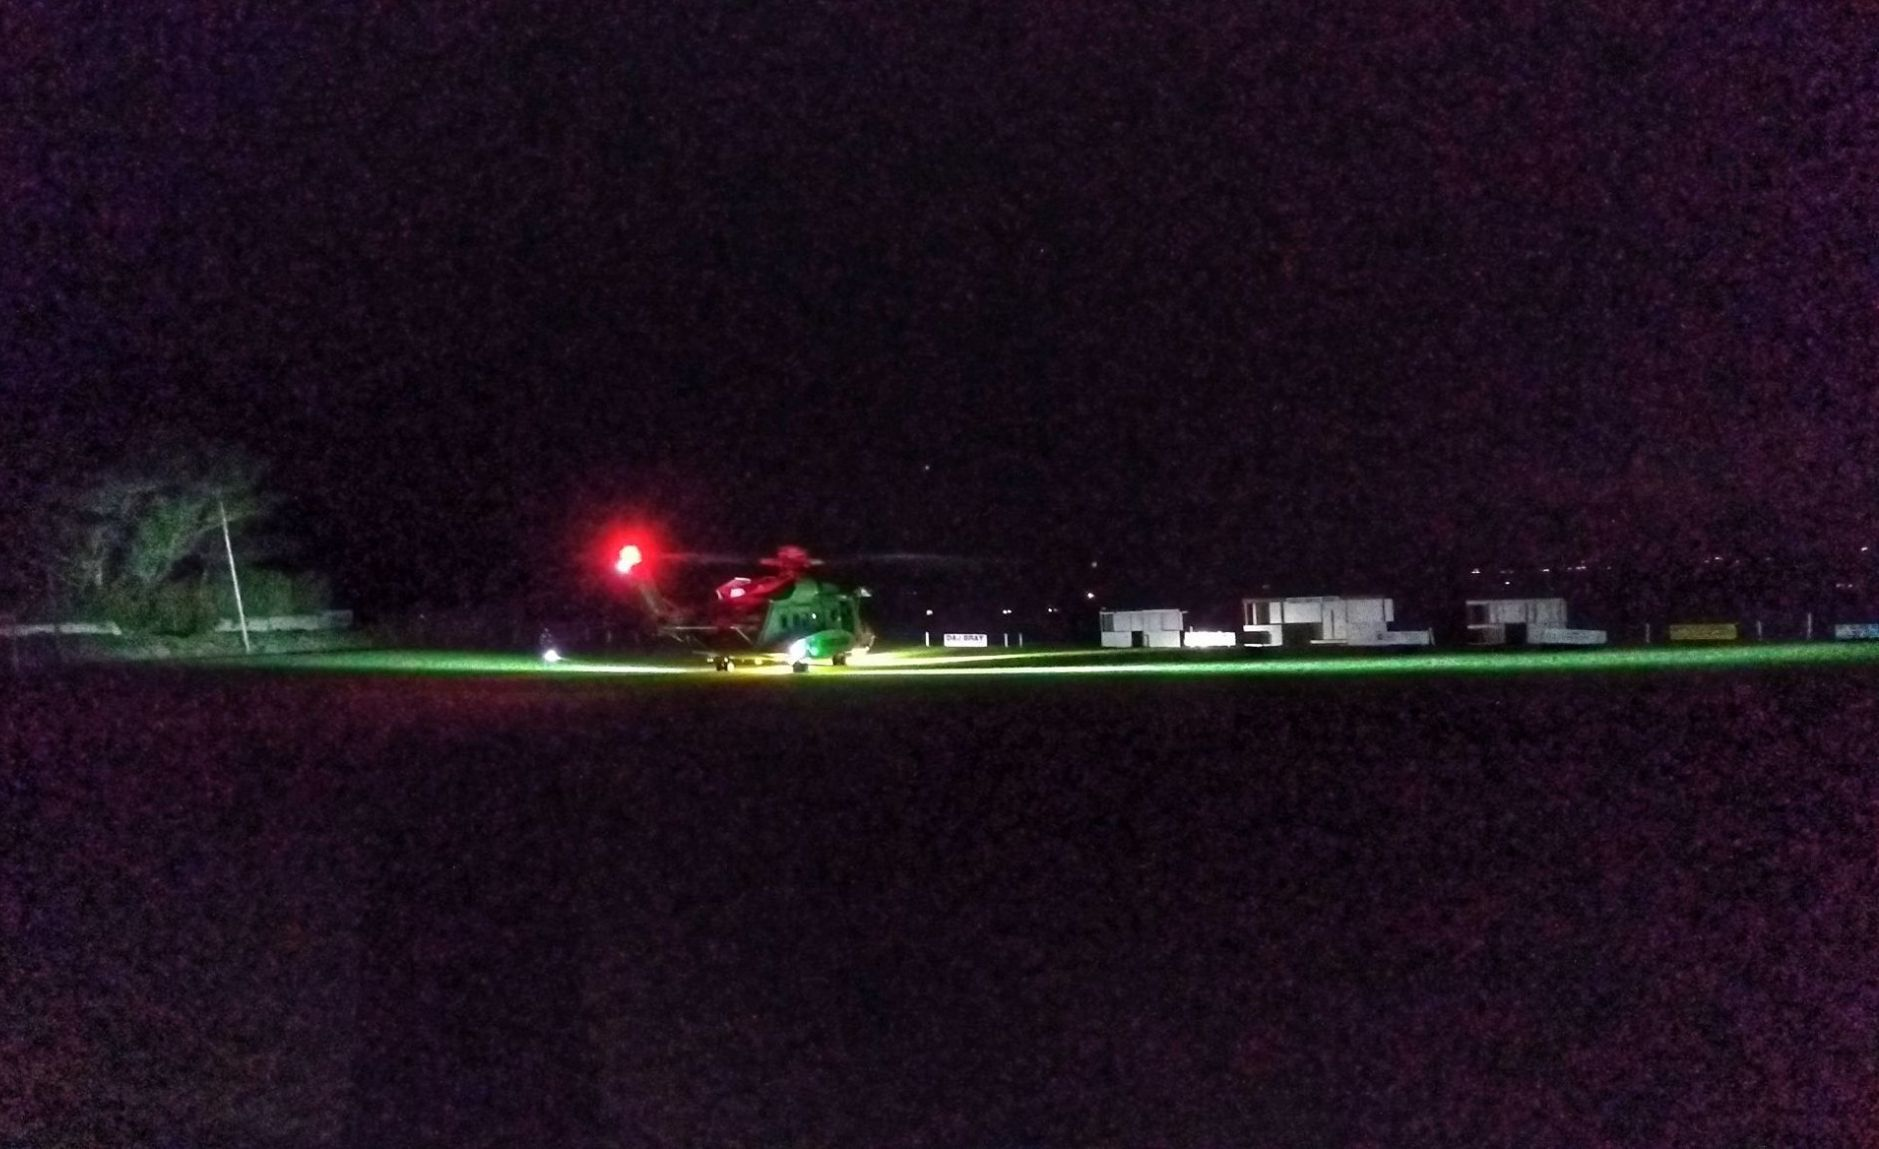 Man injured by firework in Cornwall - airlifted from Mullion